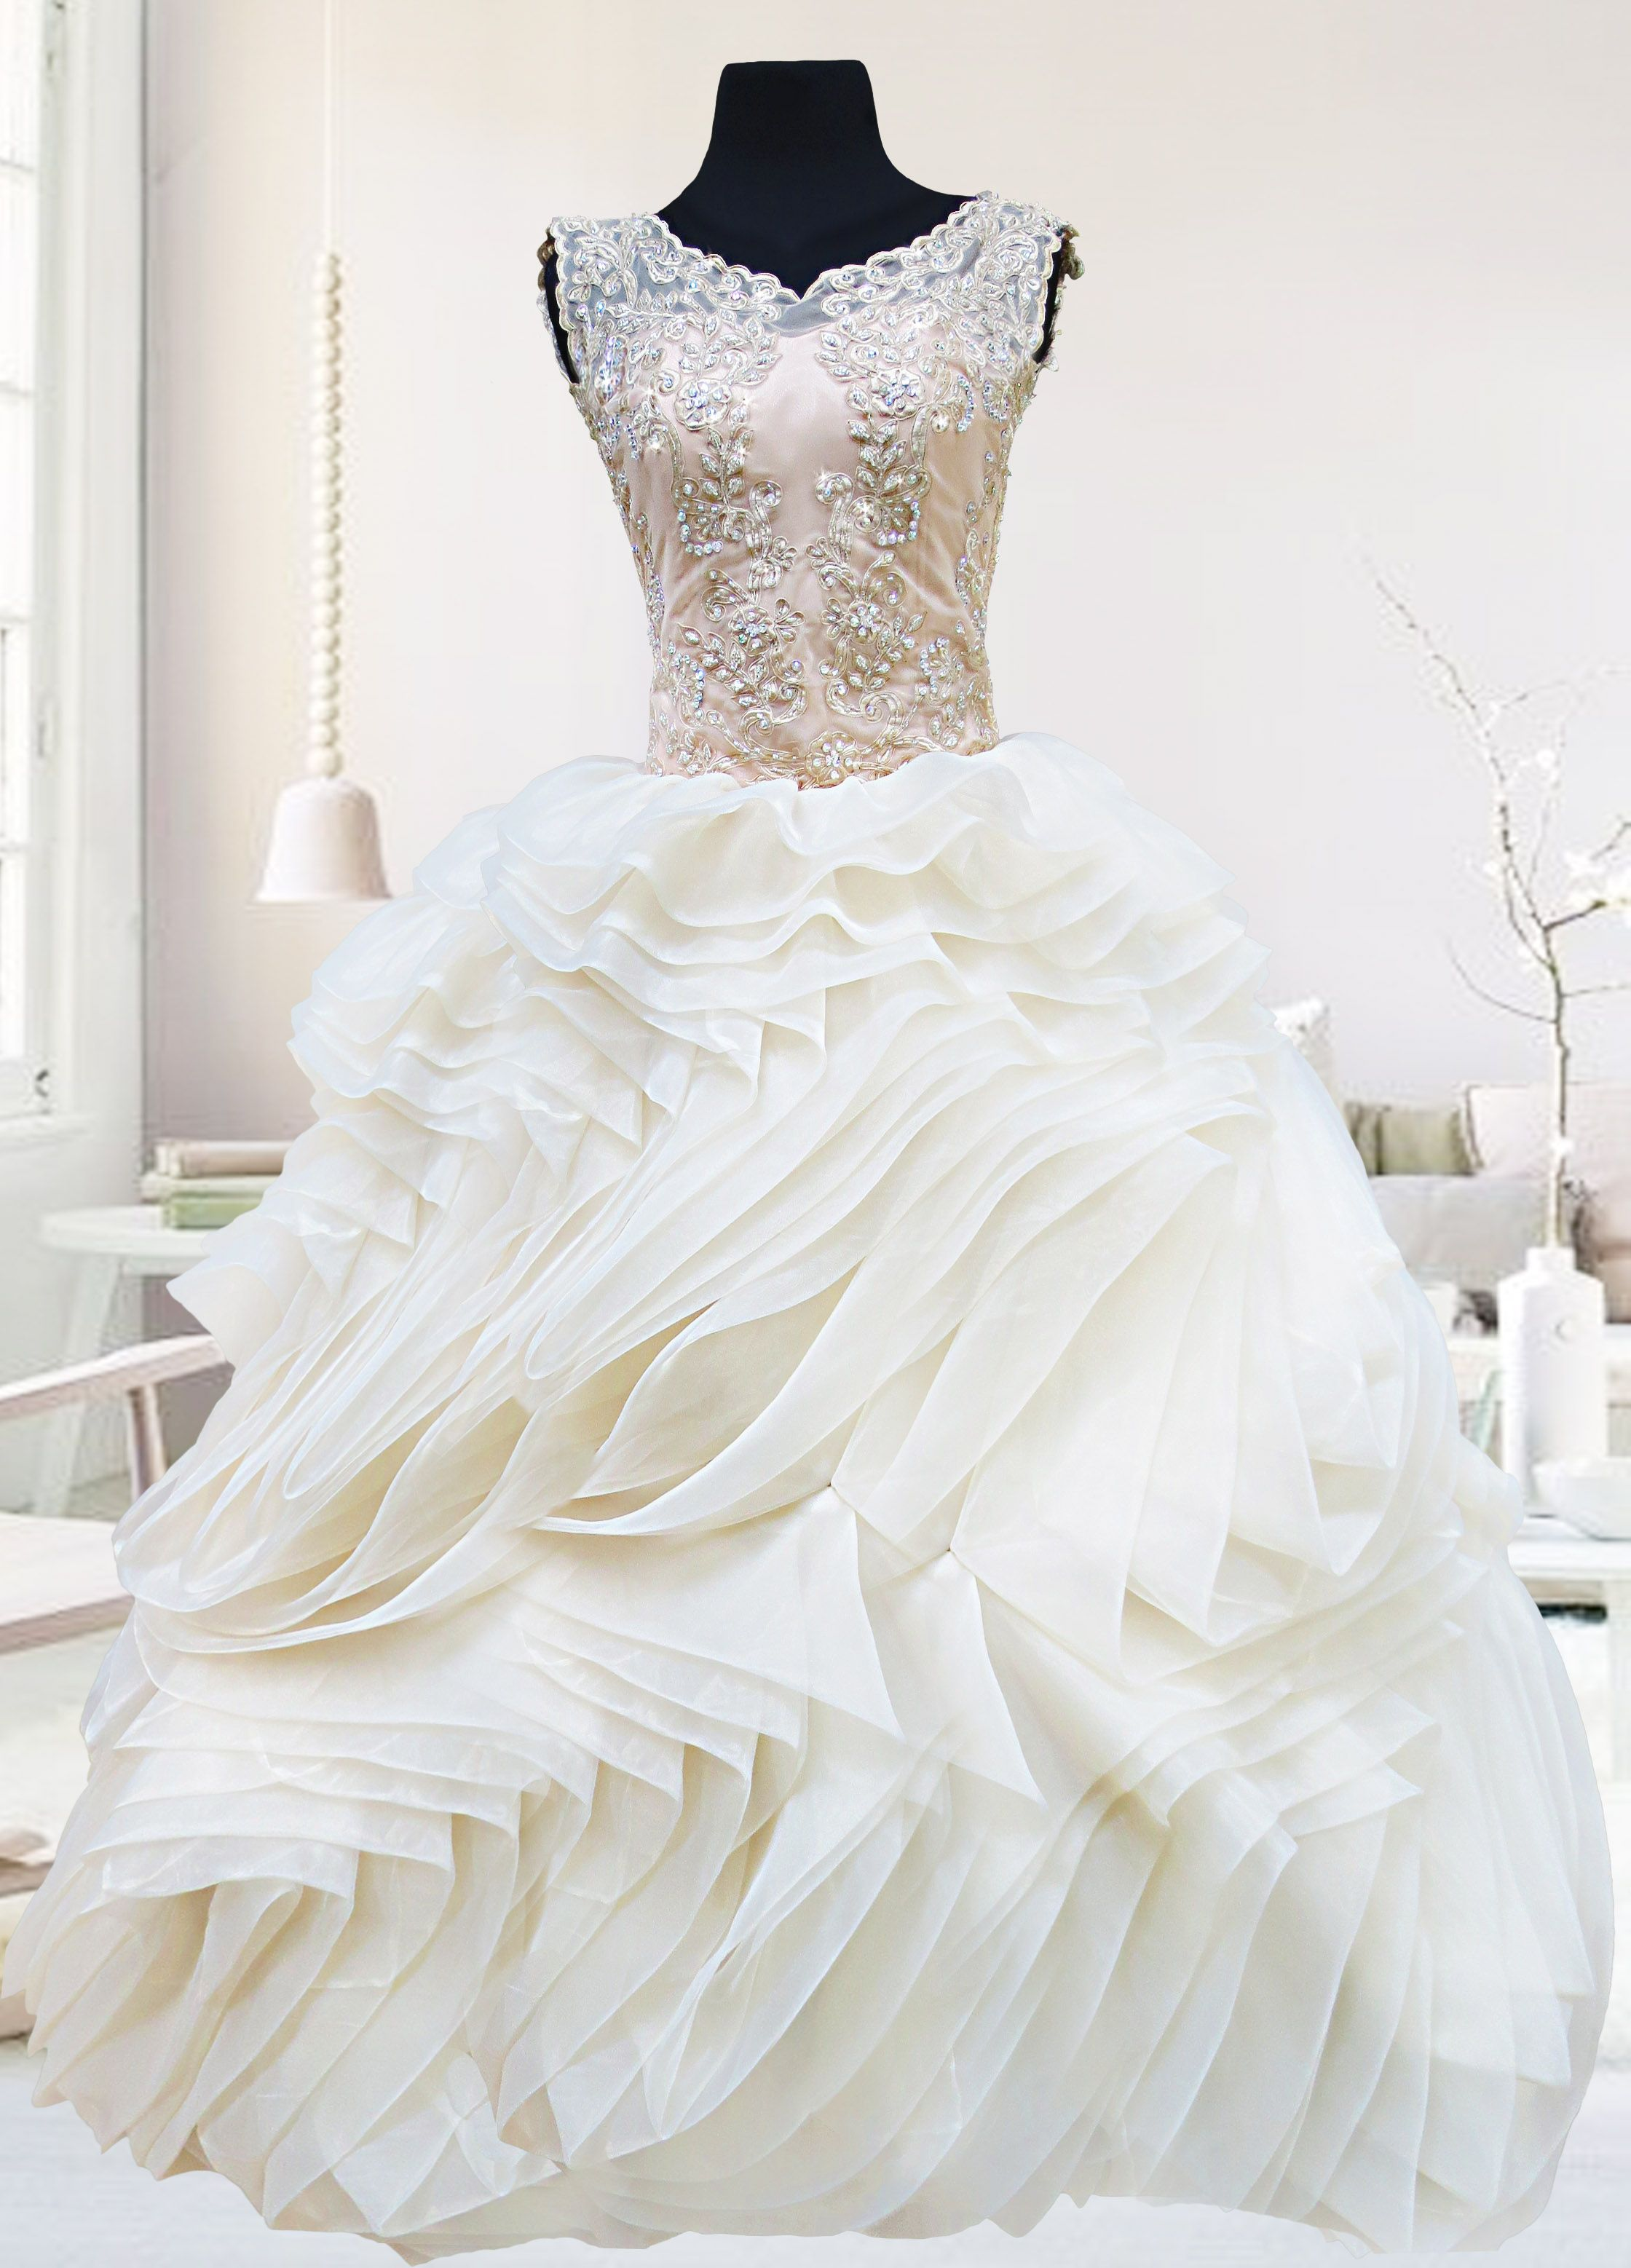 Ball Gown For A Wedding Debut Prom Or